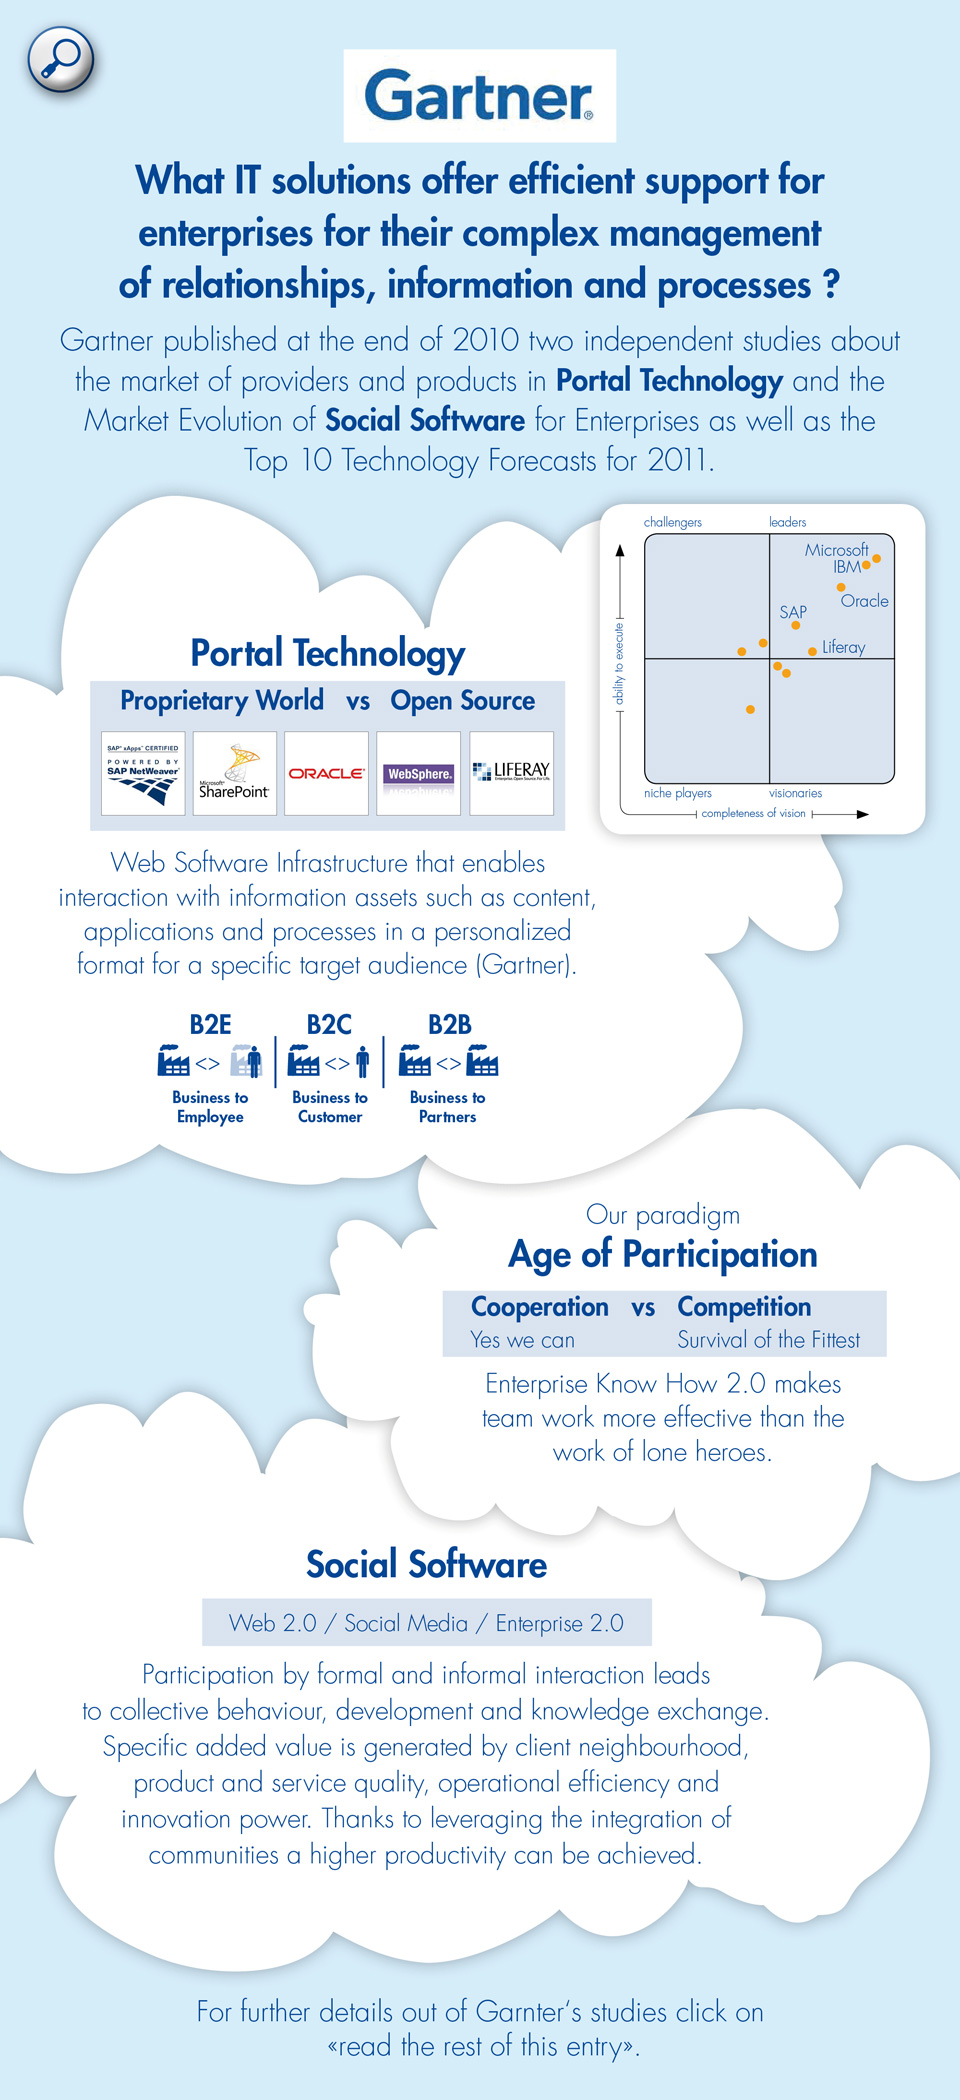 Portal technology with Liferay as one of the market leaders / Paradigm of the age of participation / Social Software such as Web 2.0, Social Media, Web 2.0